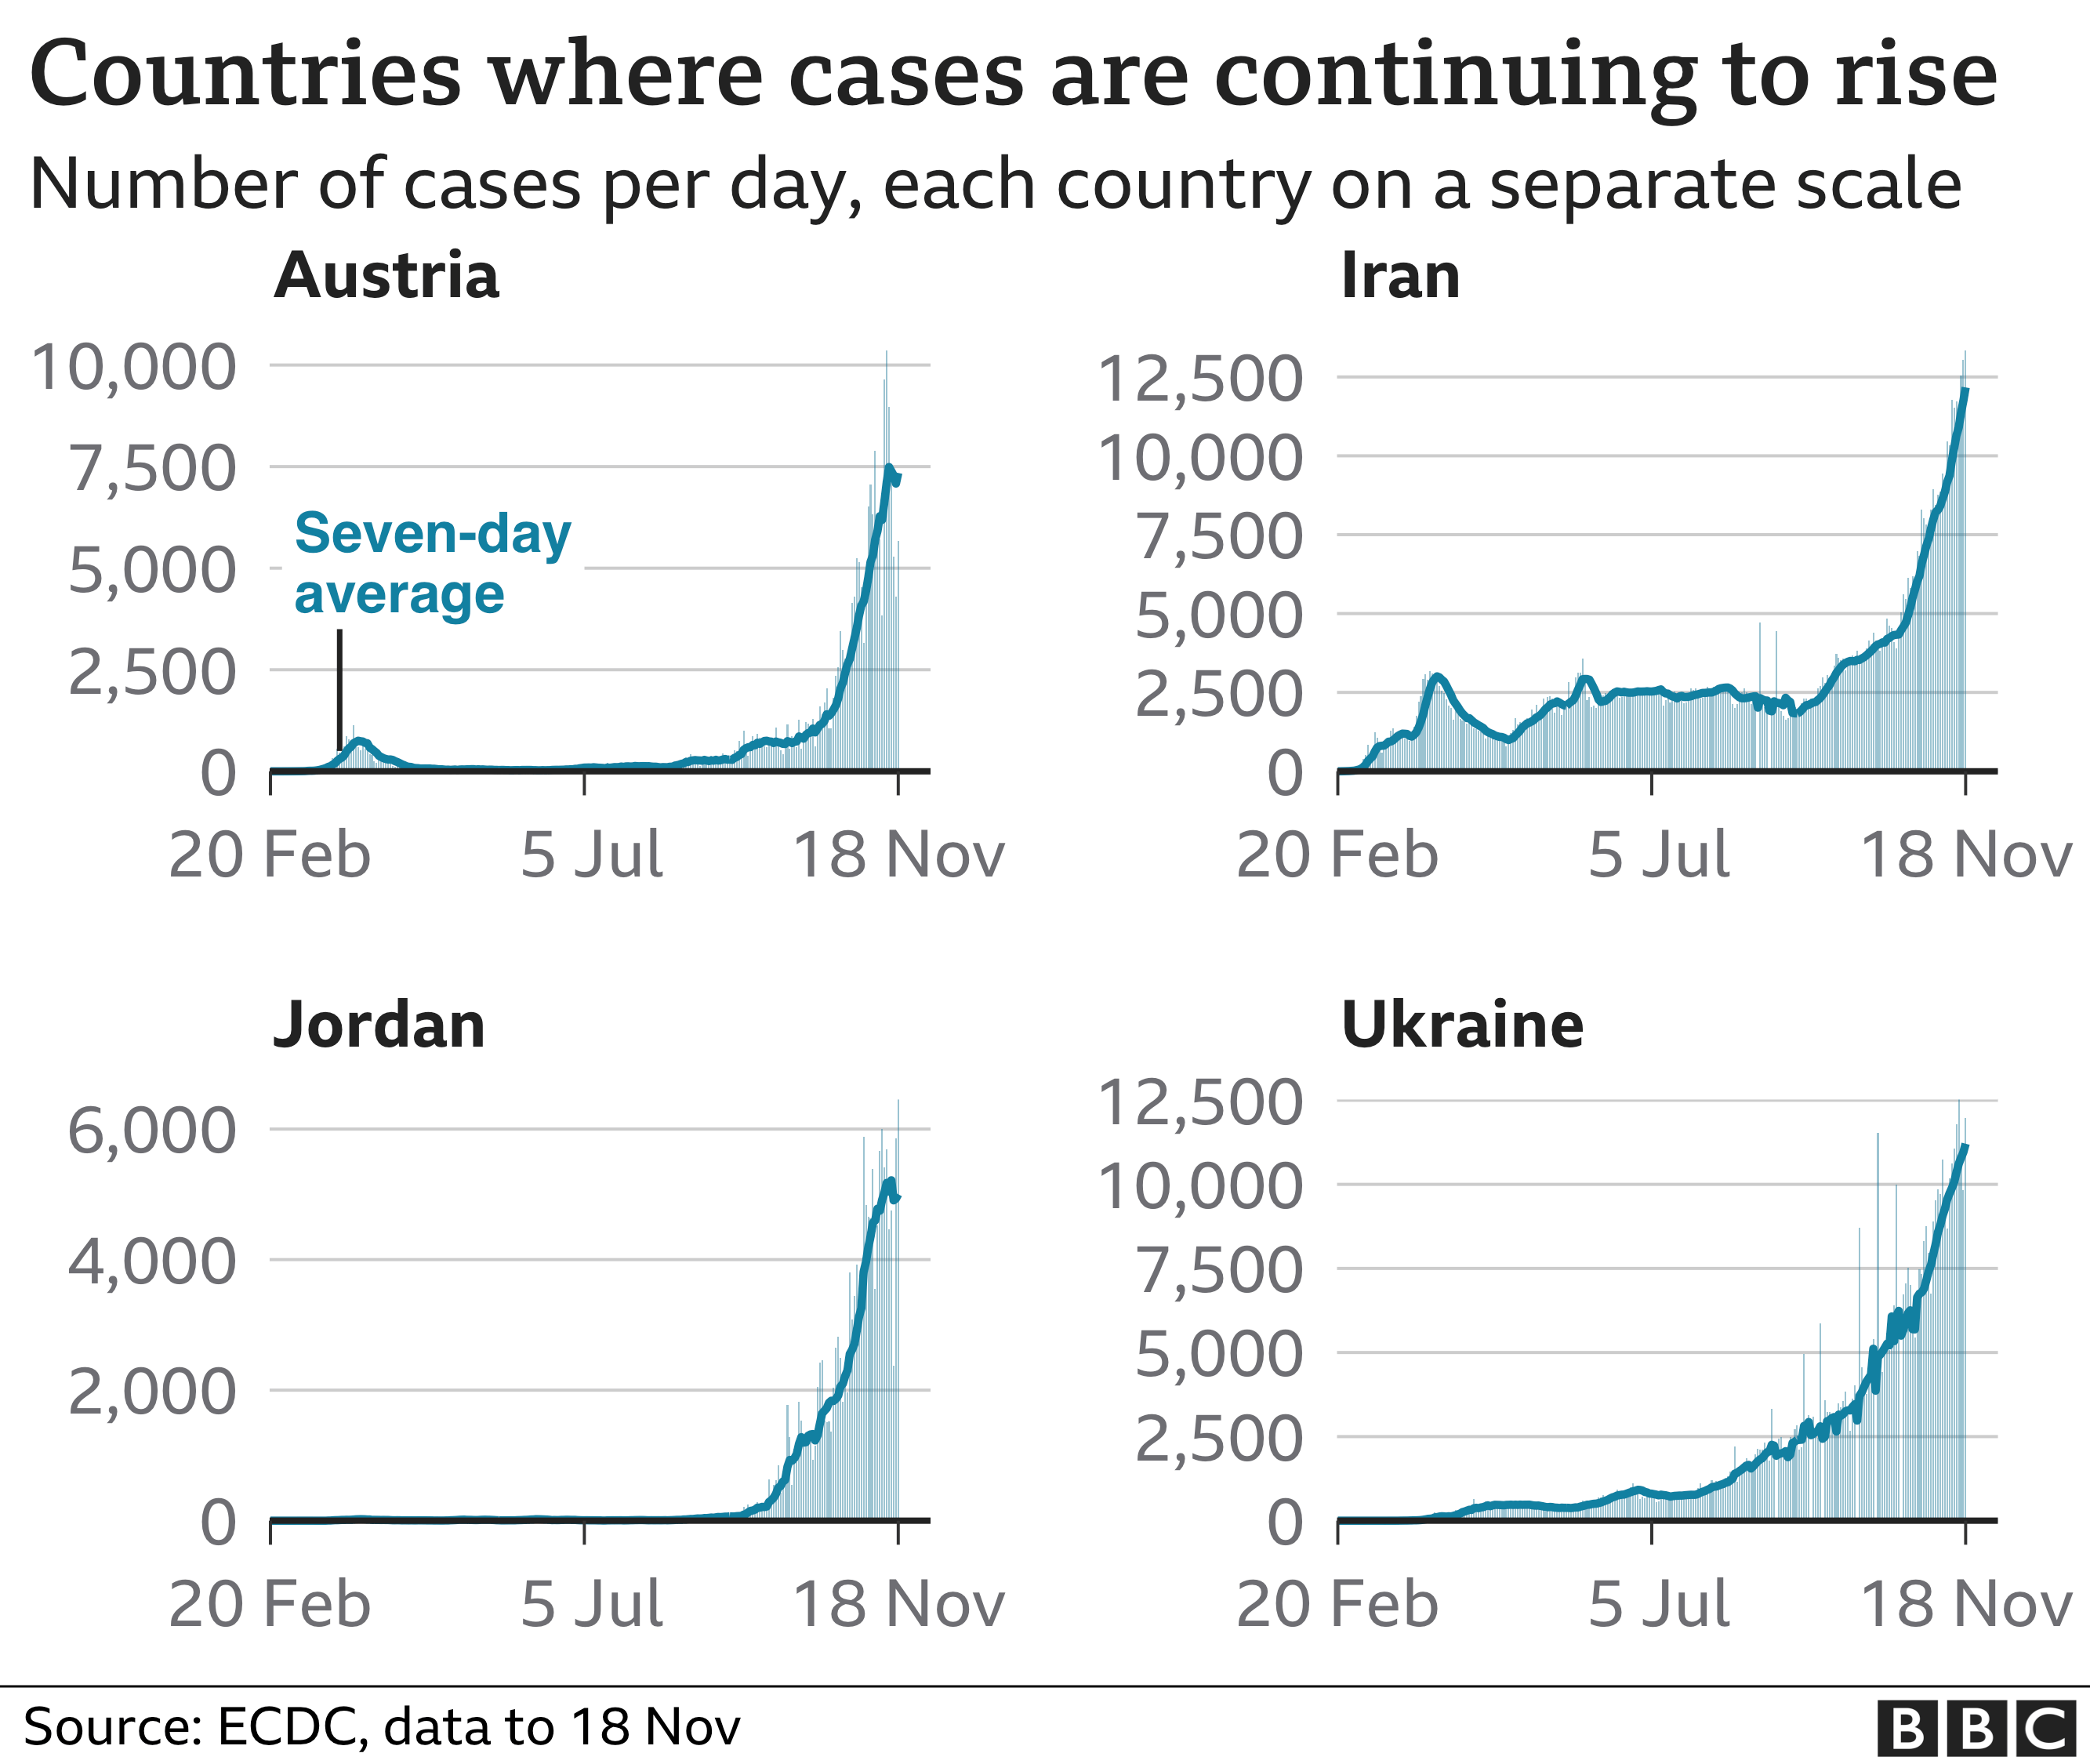 Chart shows four countries where cases are continuing to rise, Austria, Iran, Jordan, Ukraine